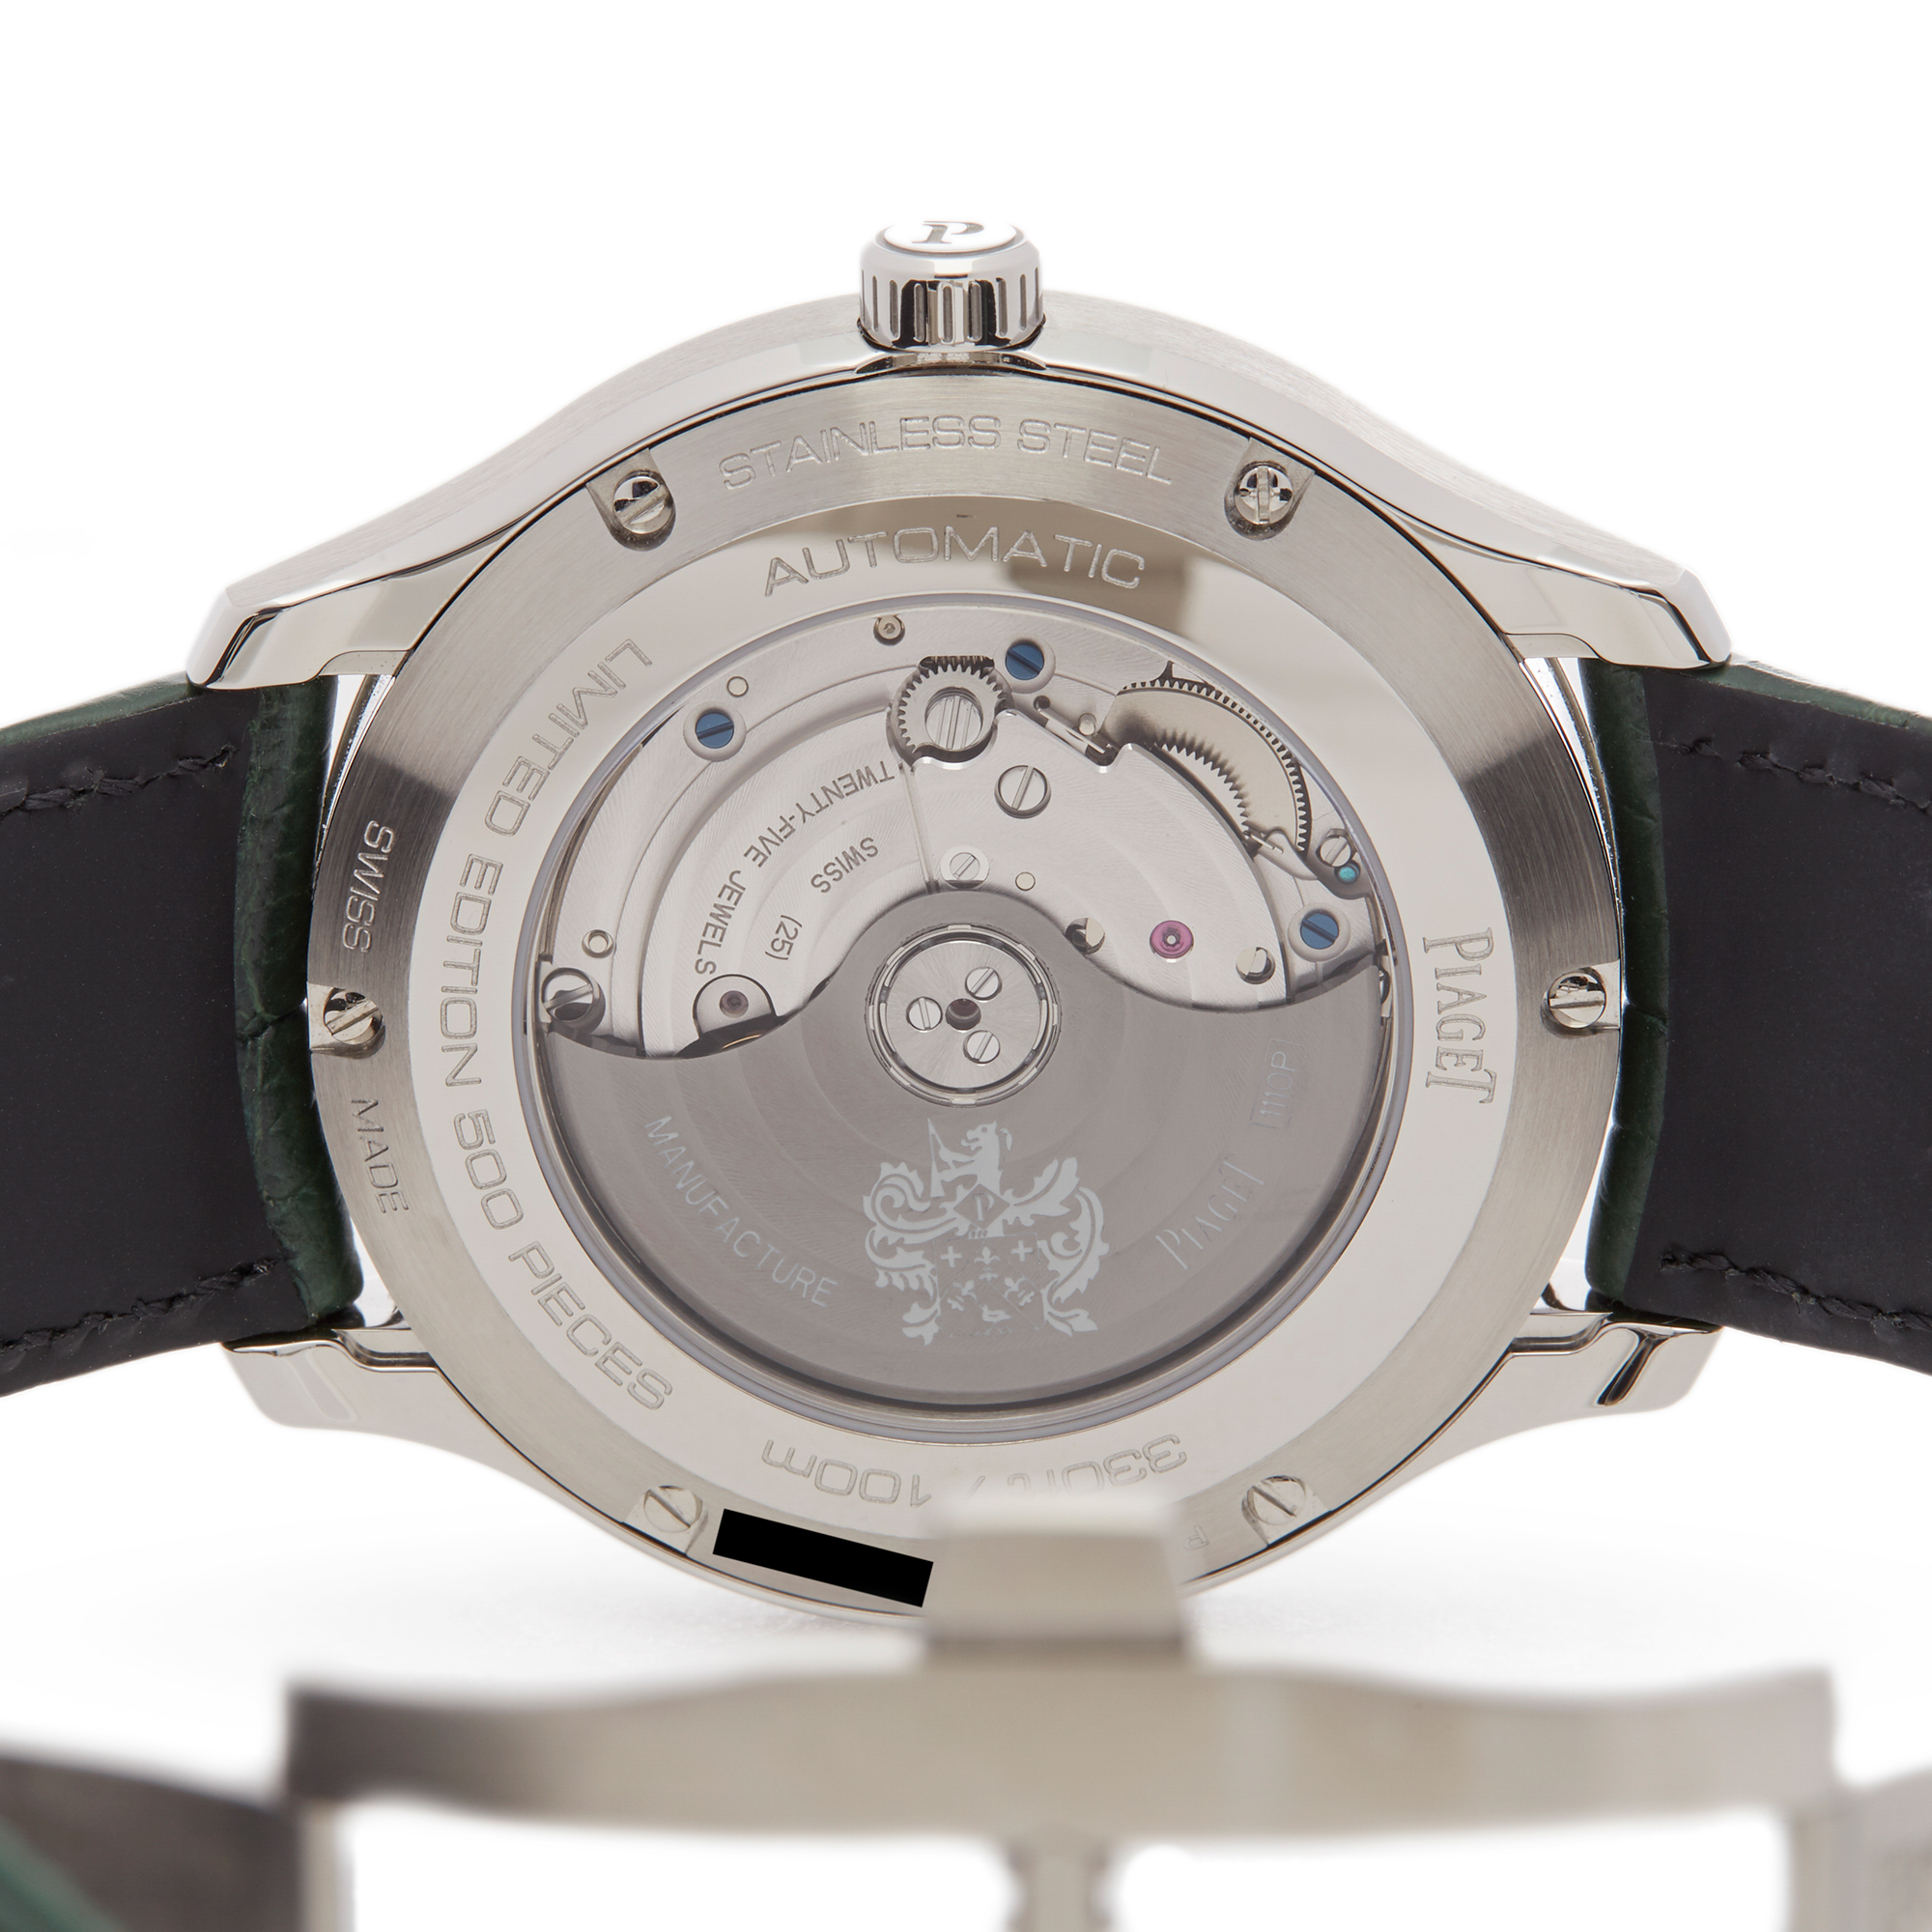 Piaget Polo S GOA44001 Men Stainless Steel Ltd Edition 500 Pieces Watch - Image 4 of 8